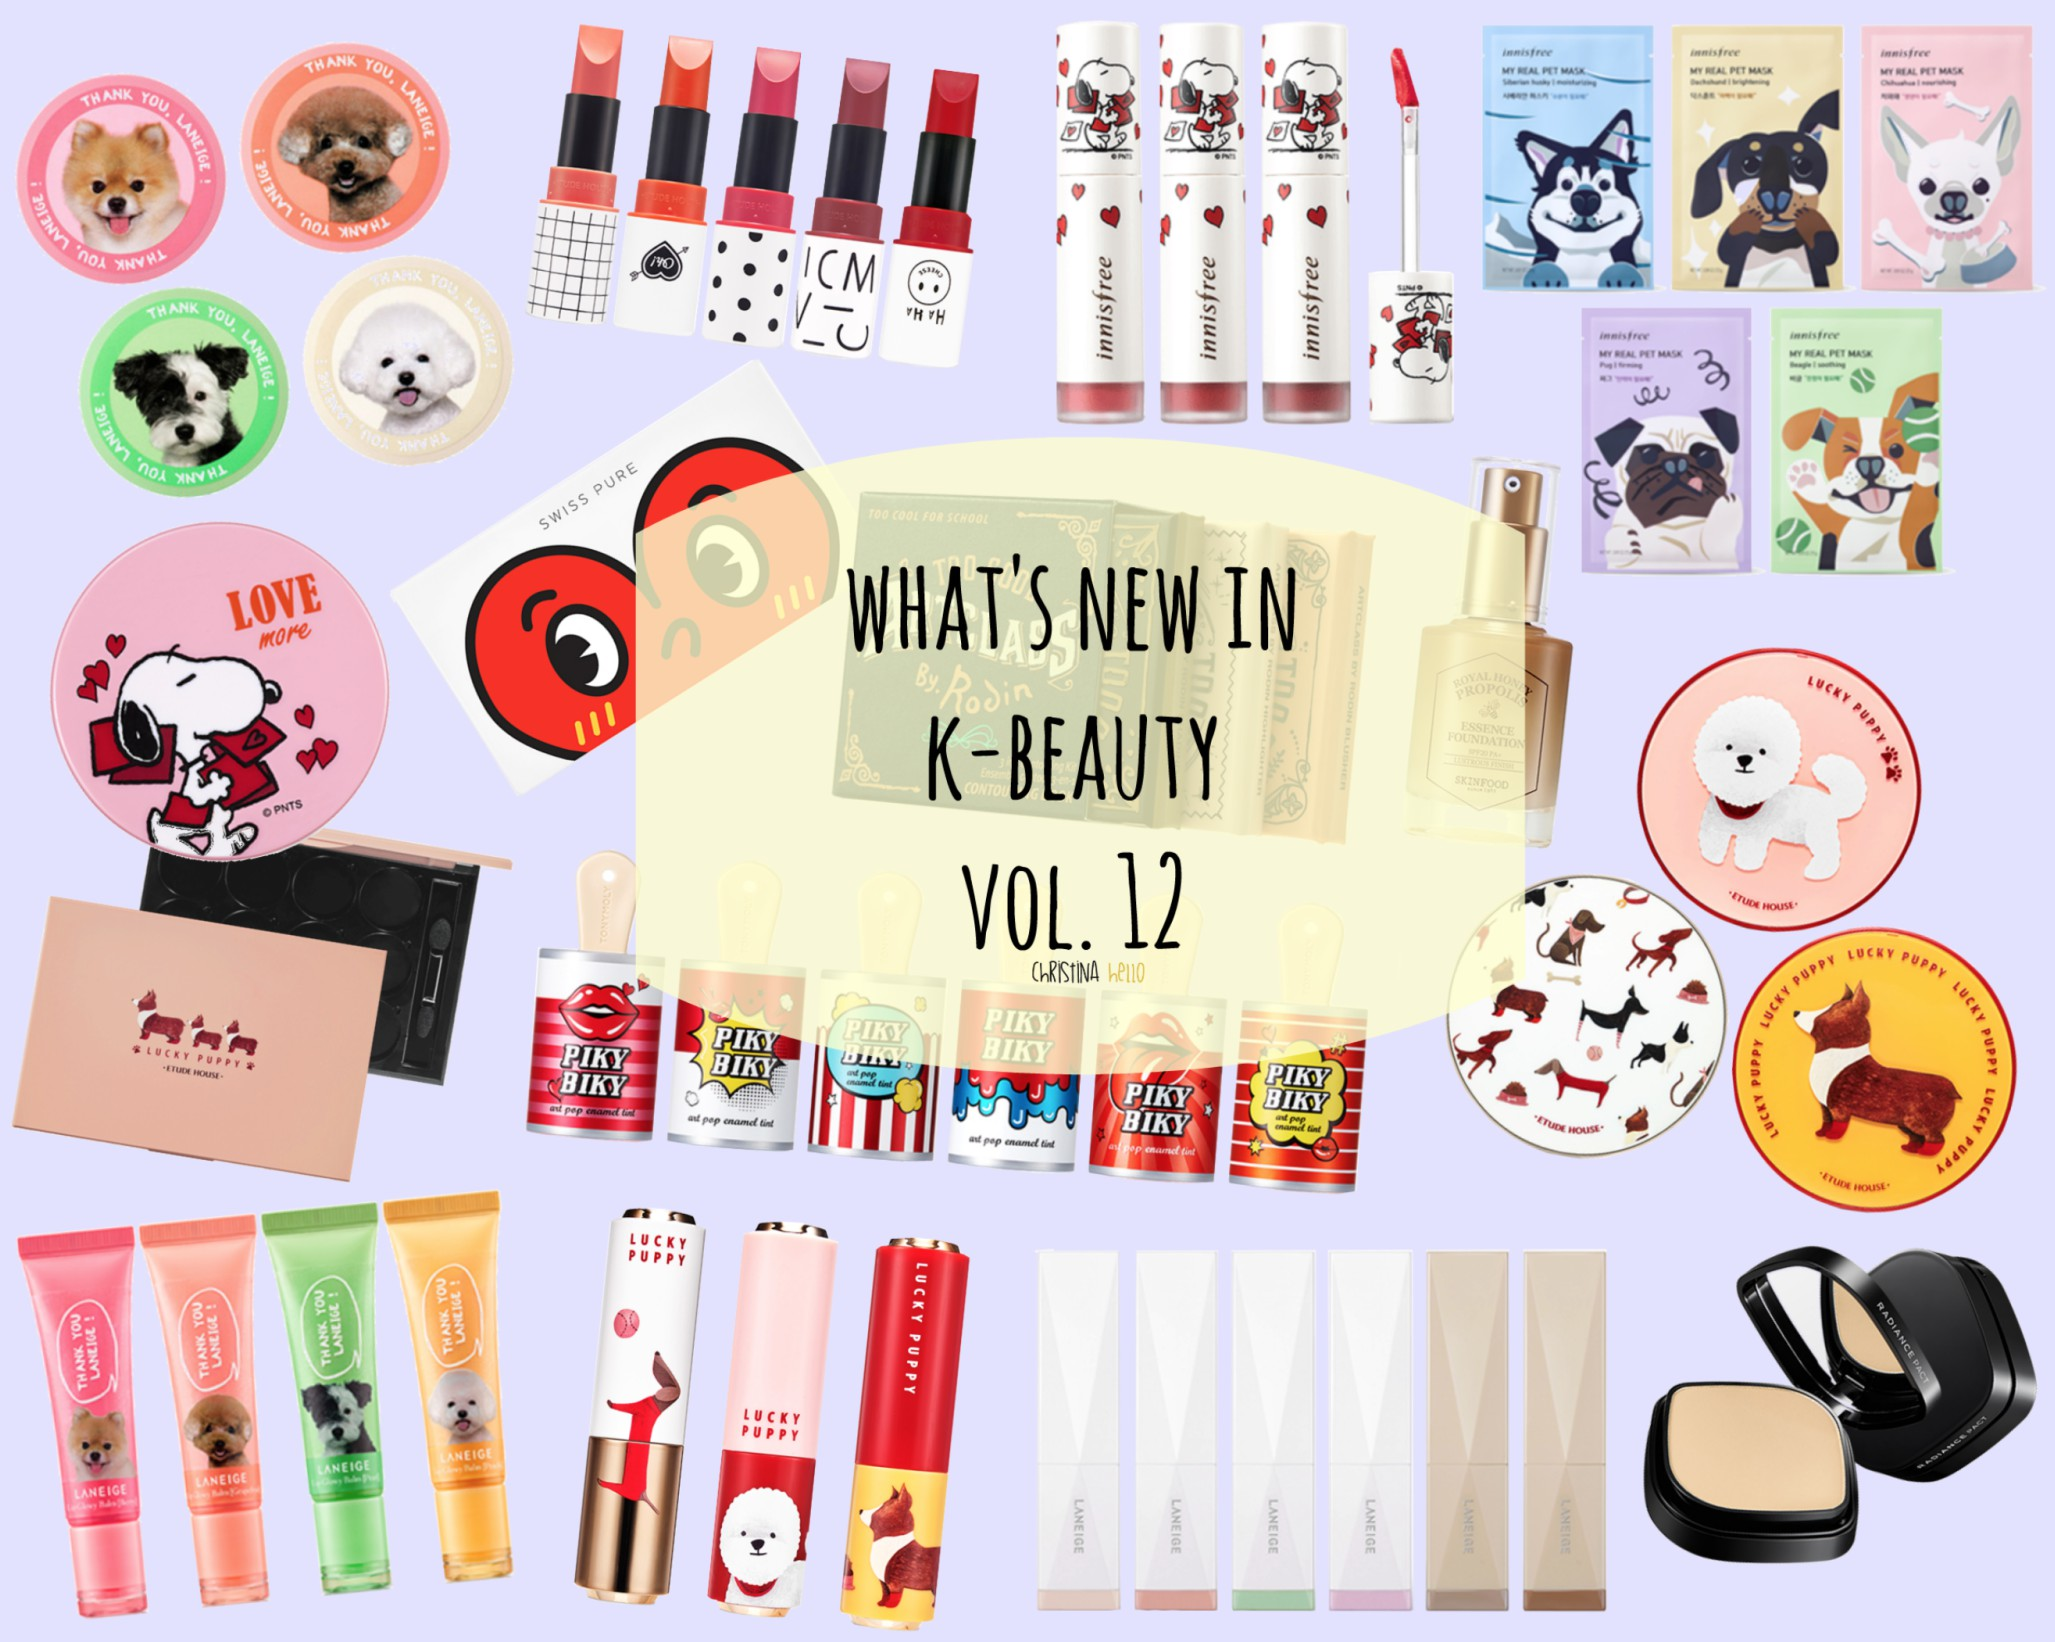 Whats-new-in-k-beauty